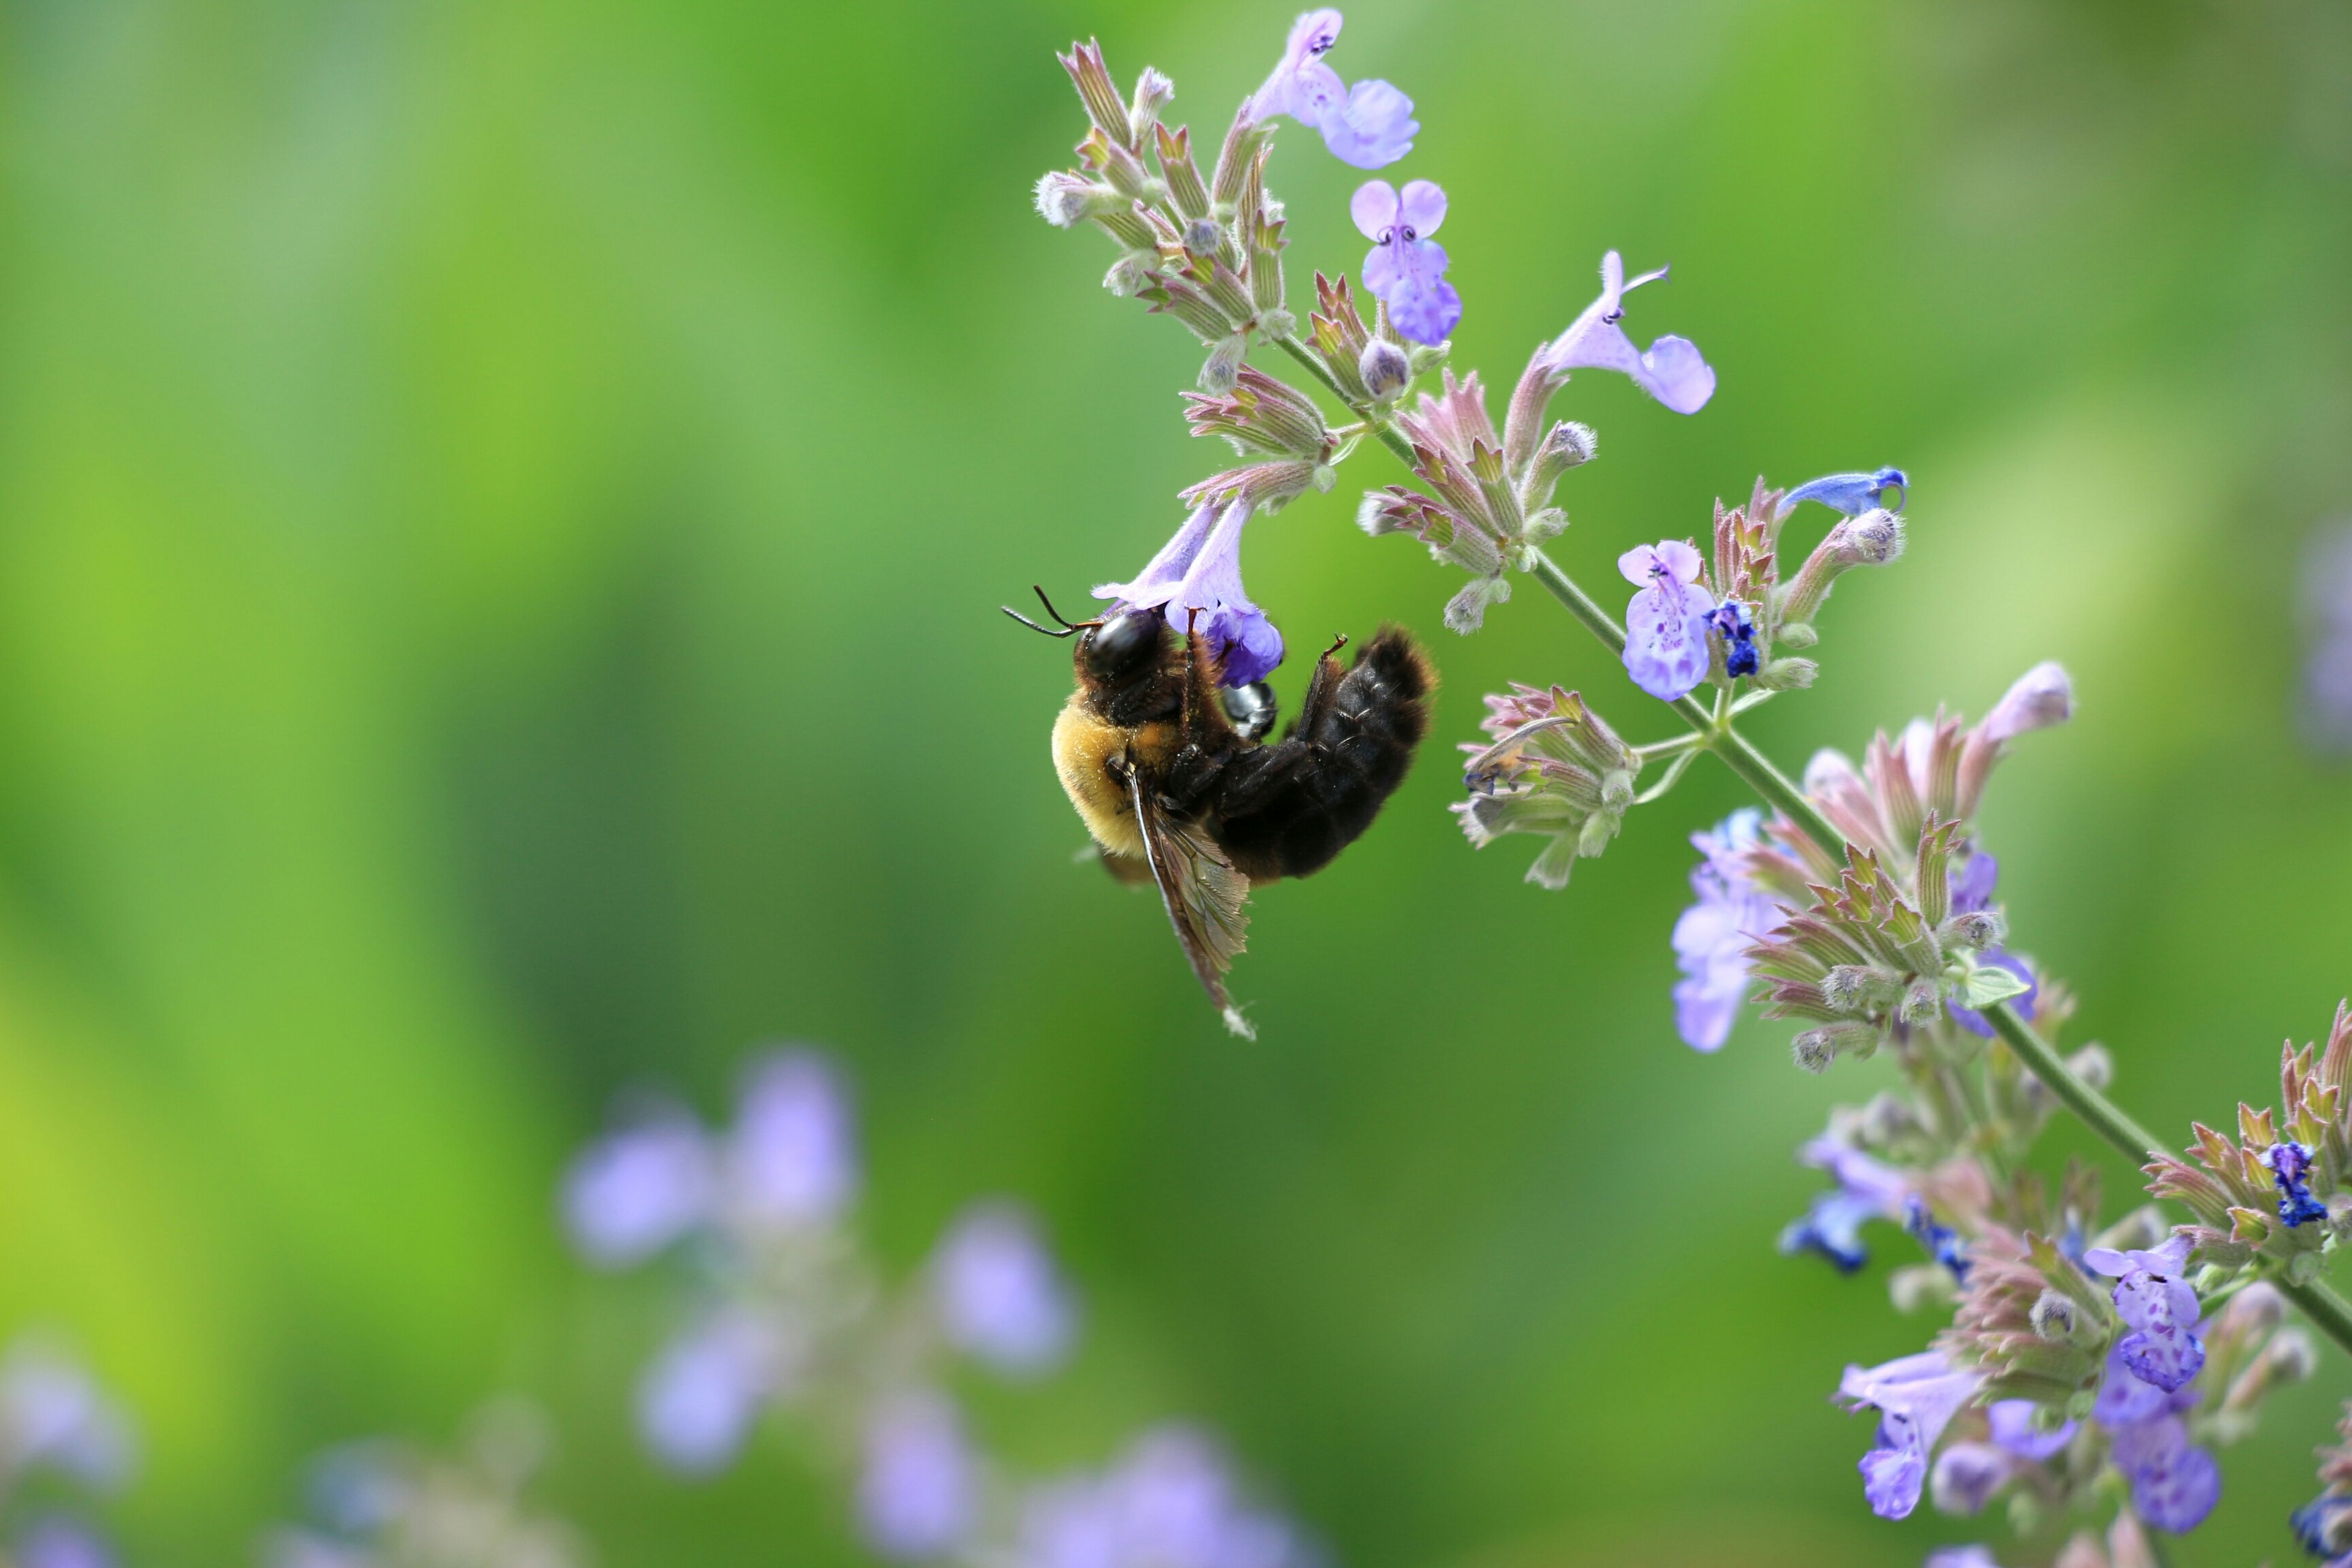 animal themes, insect, one animal, animals in the wild, wildlife, flower, bee, pollination, close-up, focus on foreground, purple, fragility, nature, selective focus, freshness, honey bee, beauty in nature, growth, symbiotic relationship, plant